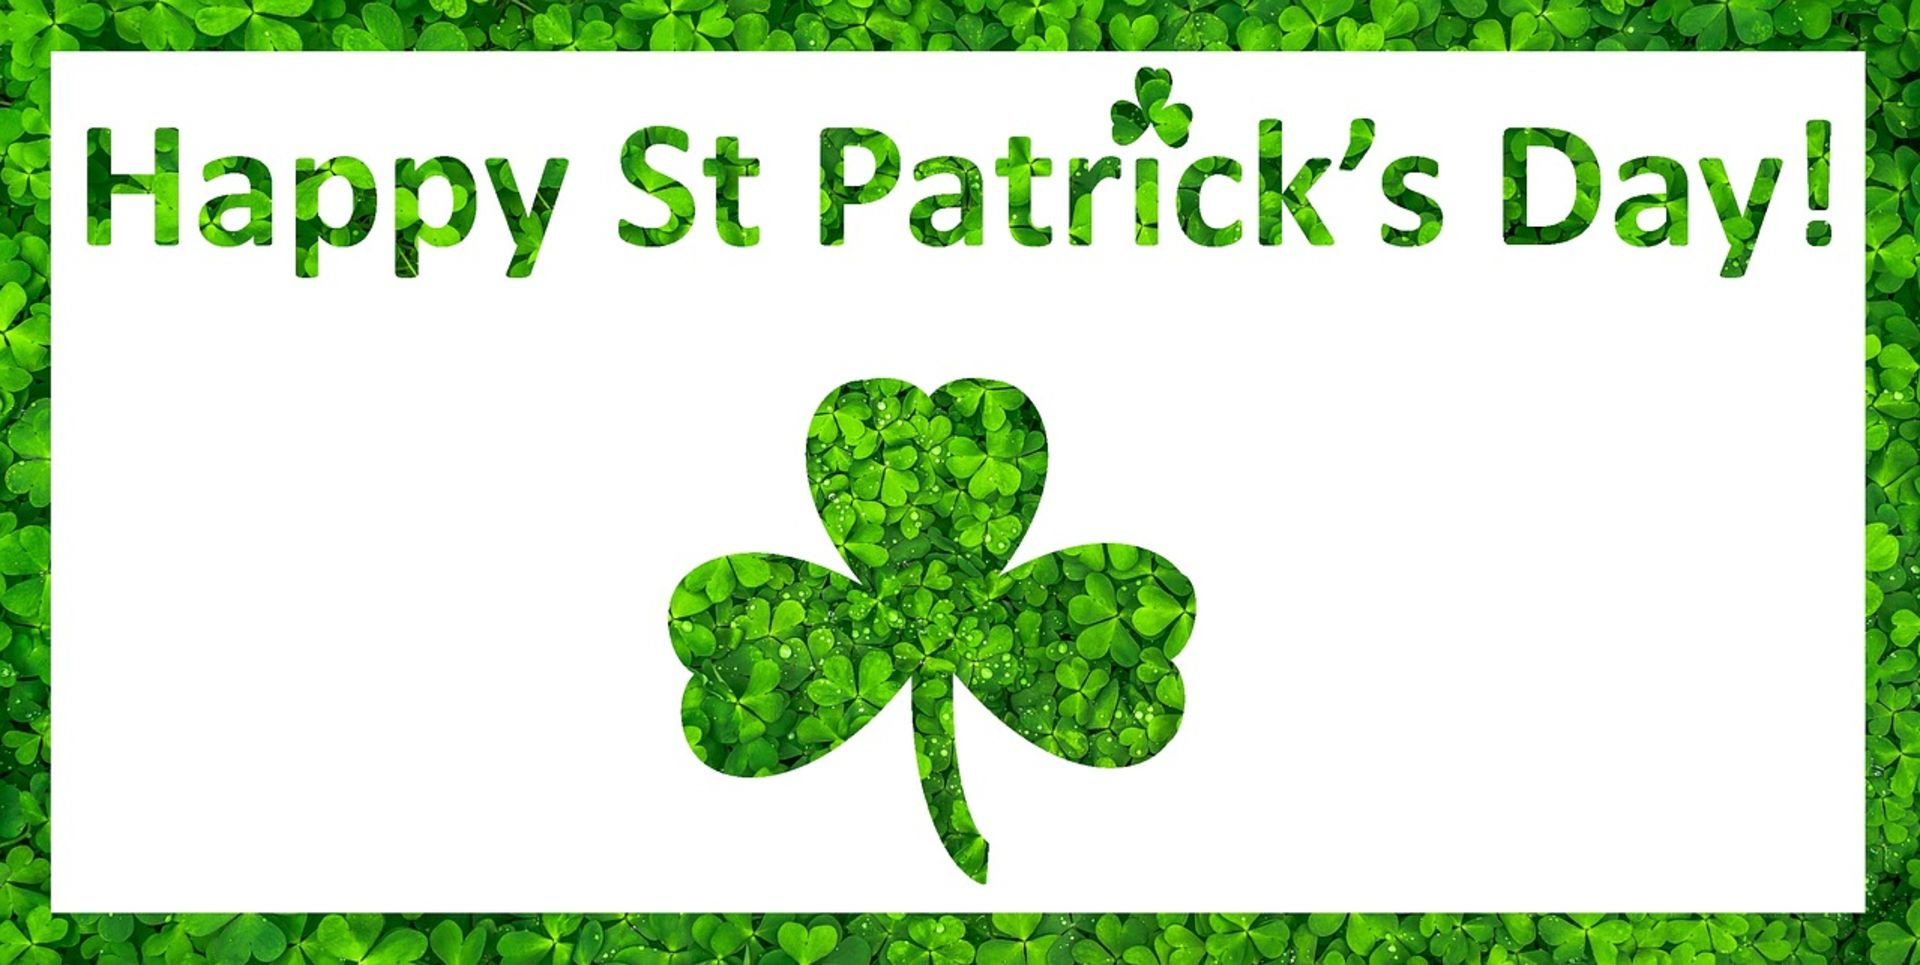 Don't Let Your Luck Run Out! Buy A Home This Spring!